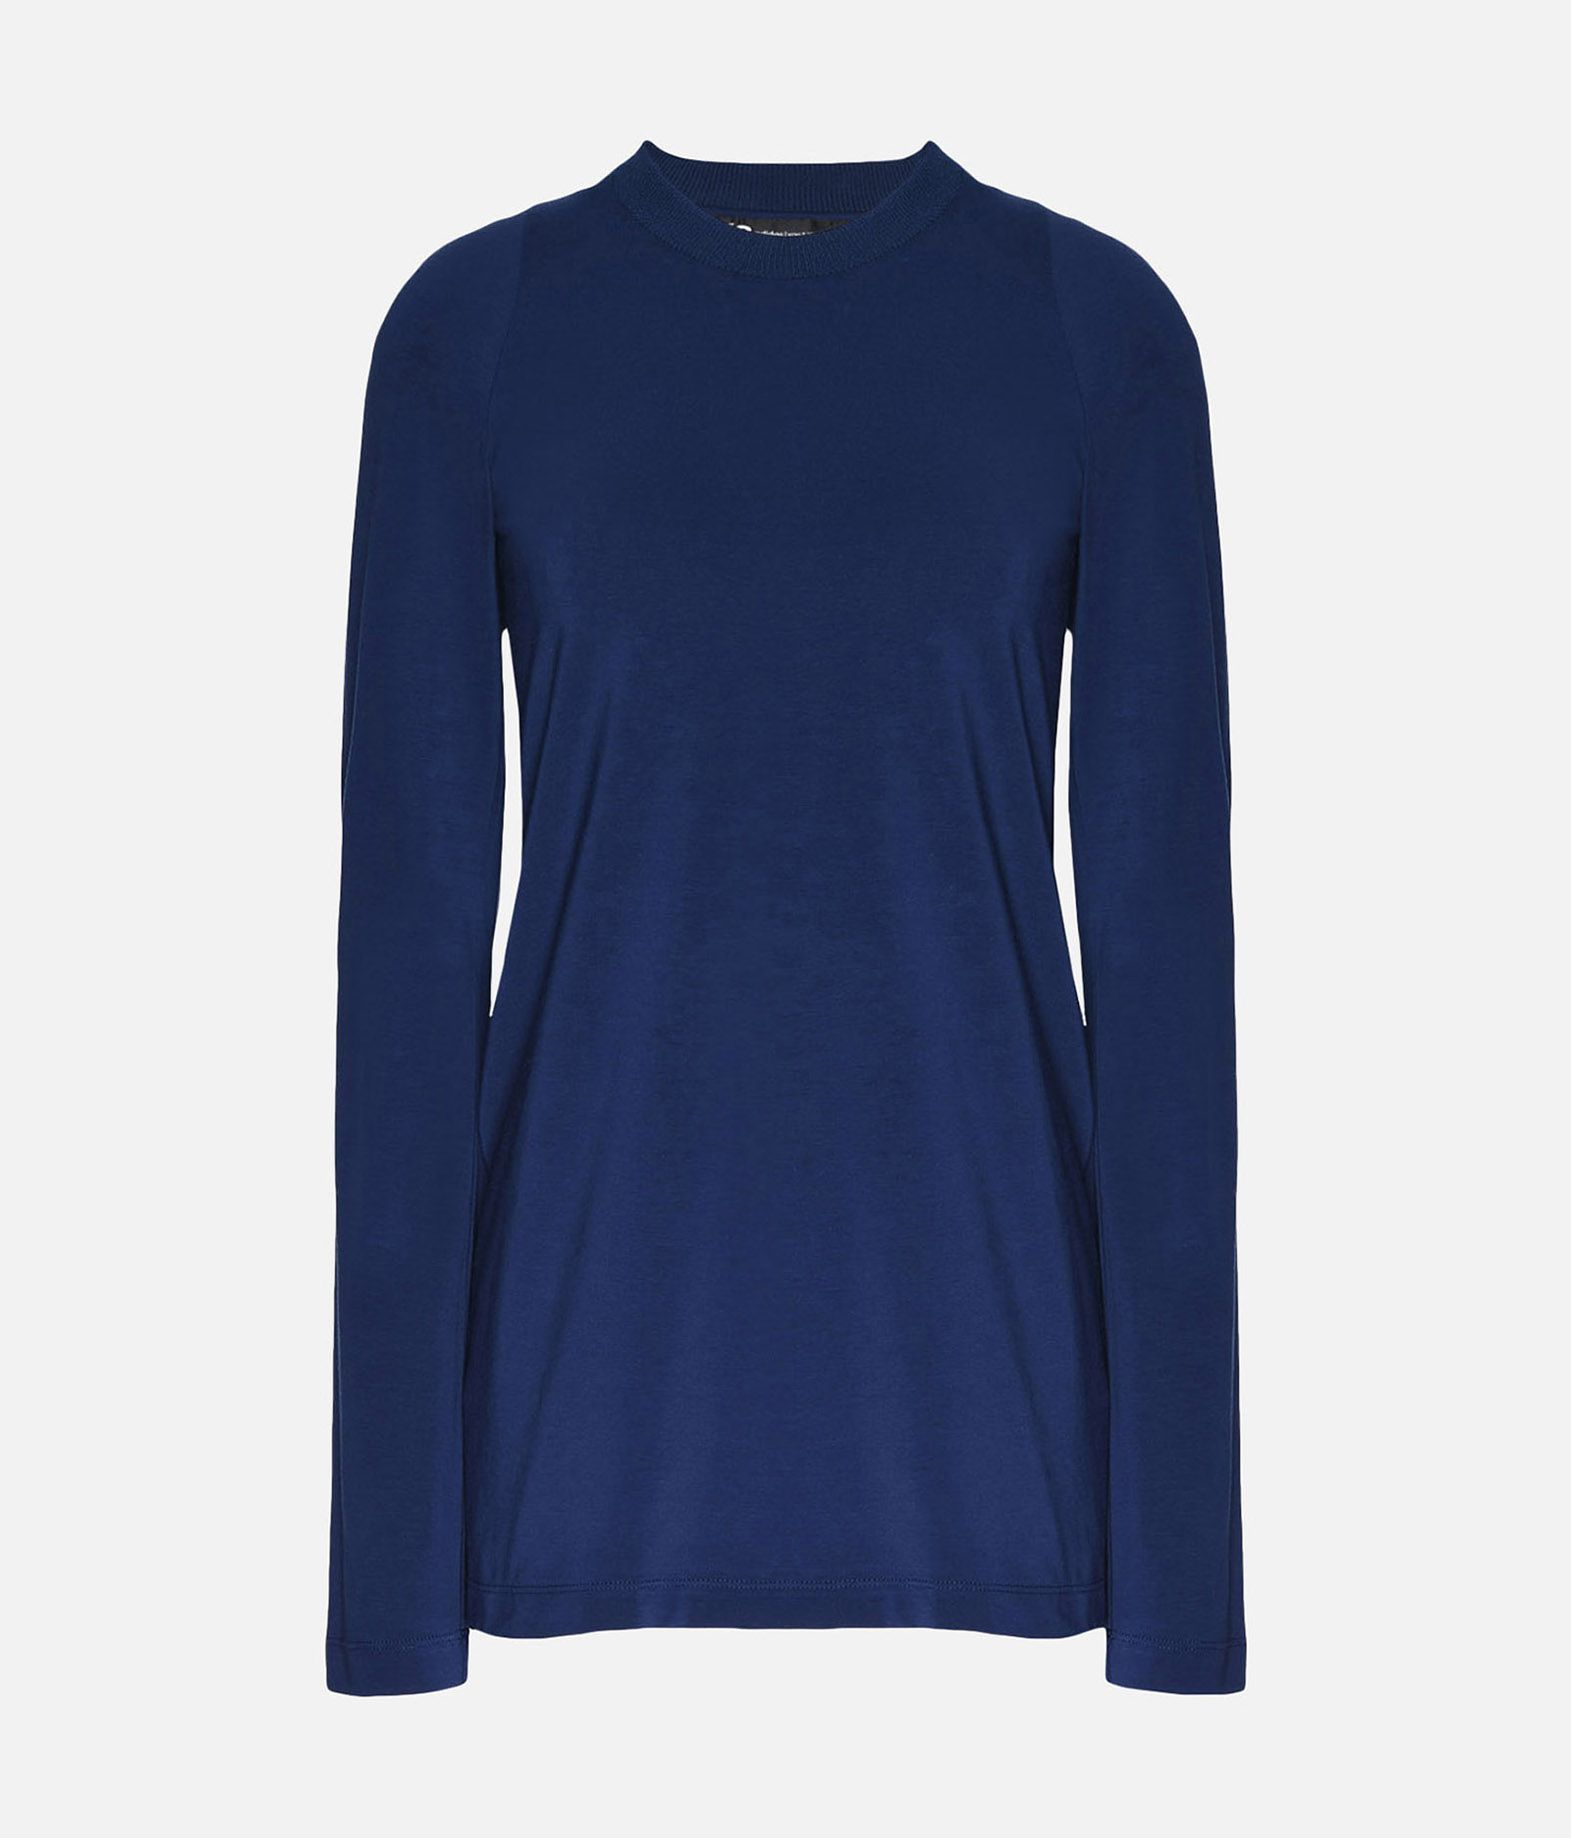 Y-3 Y-3 Prime Tee Long sleeve t-shirt Woman f